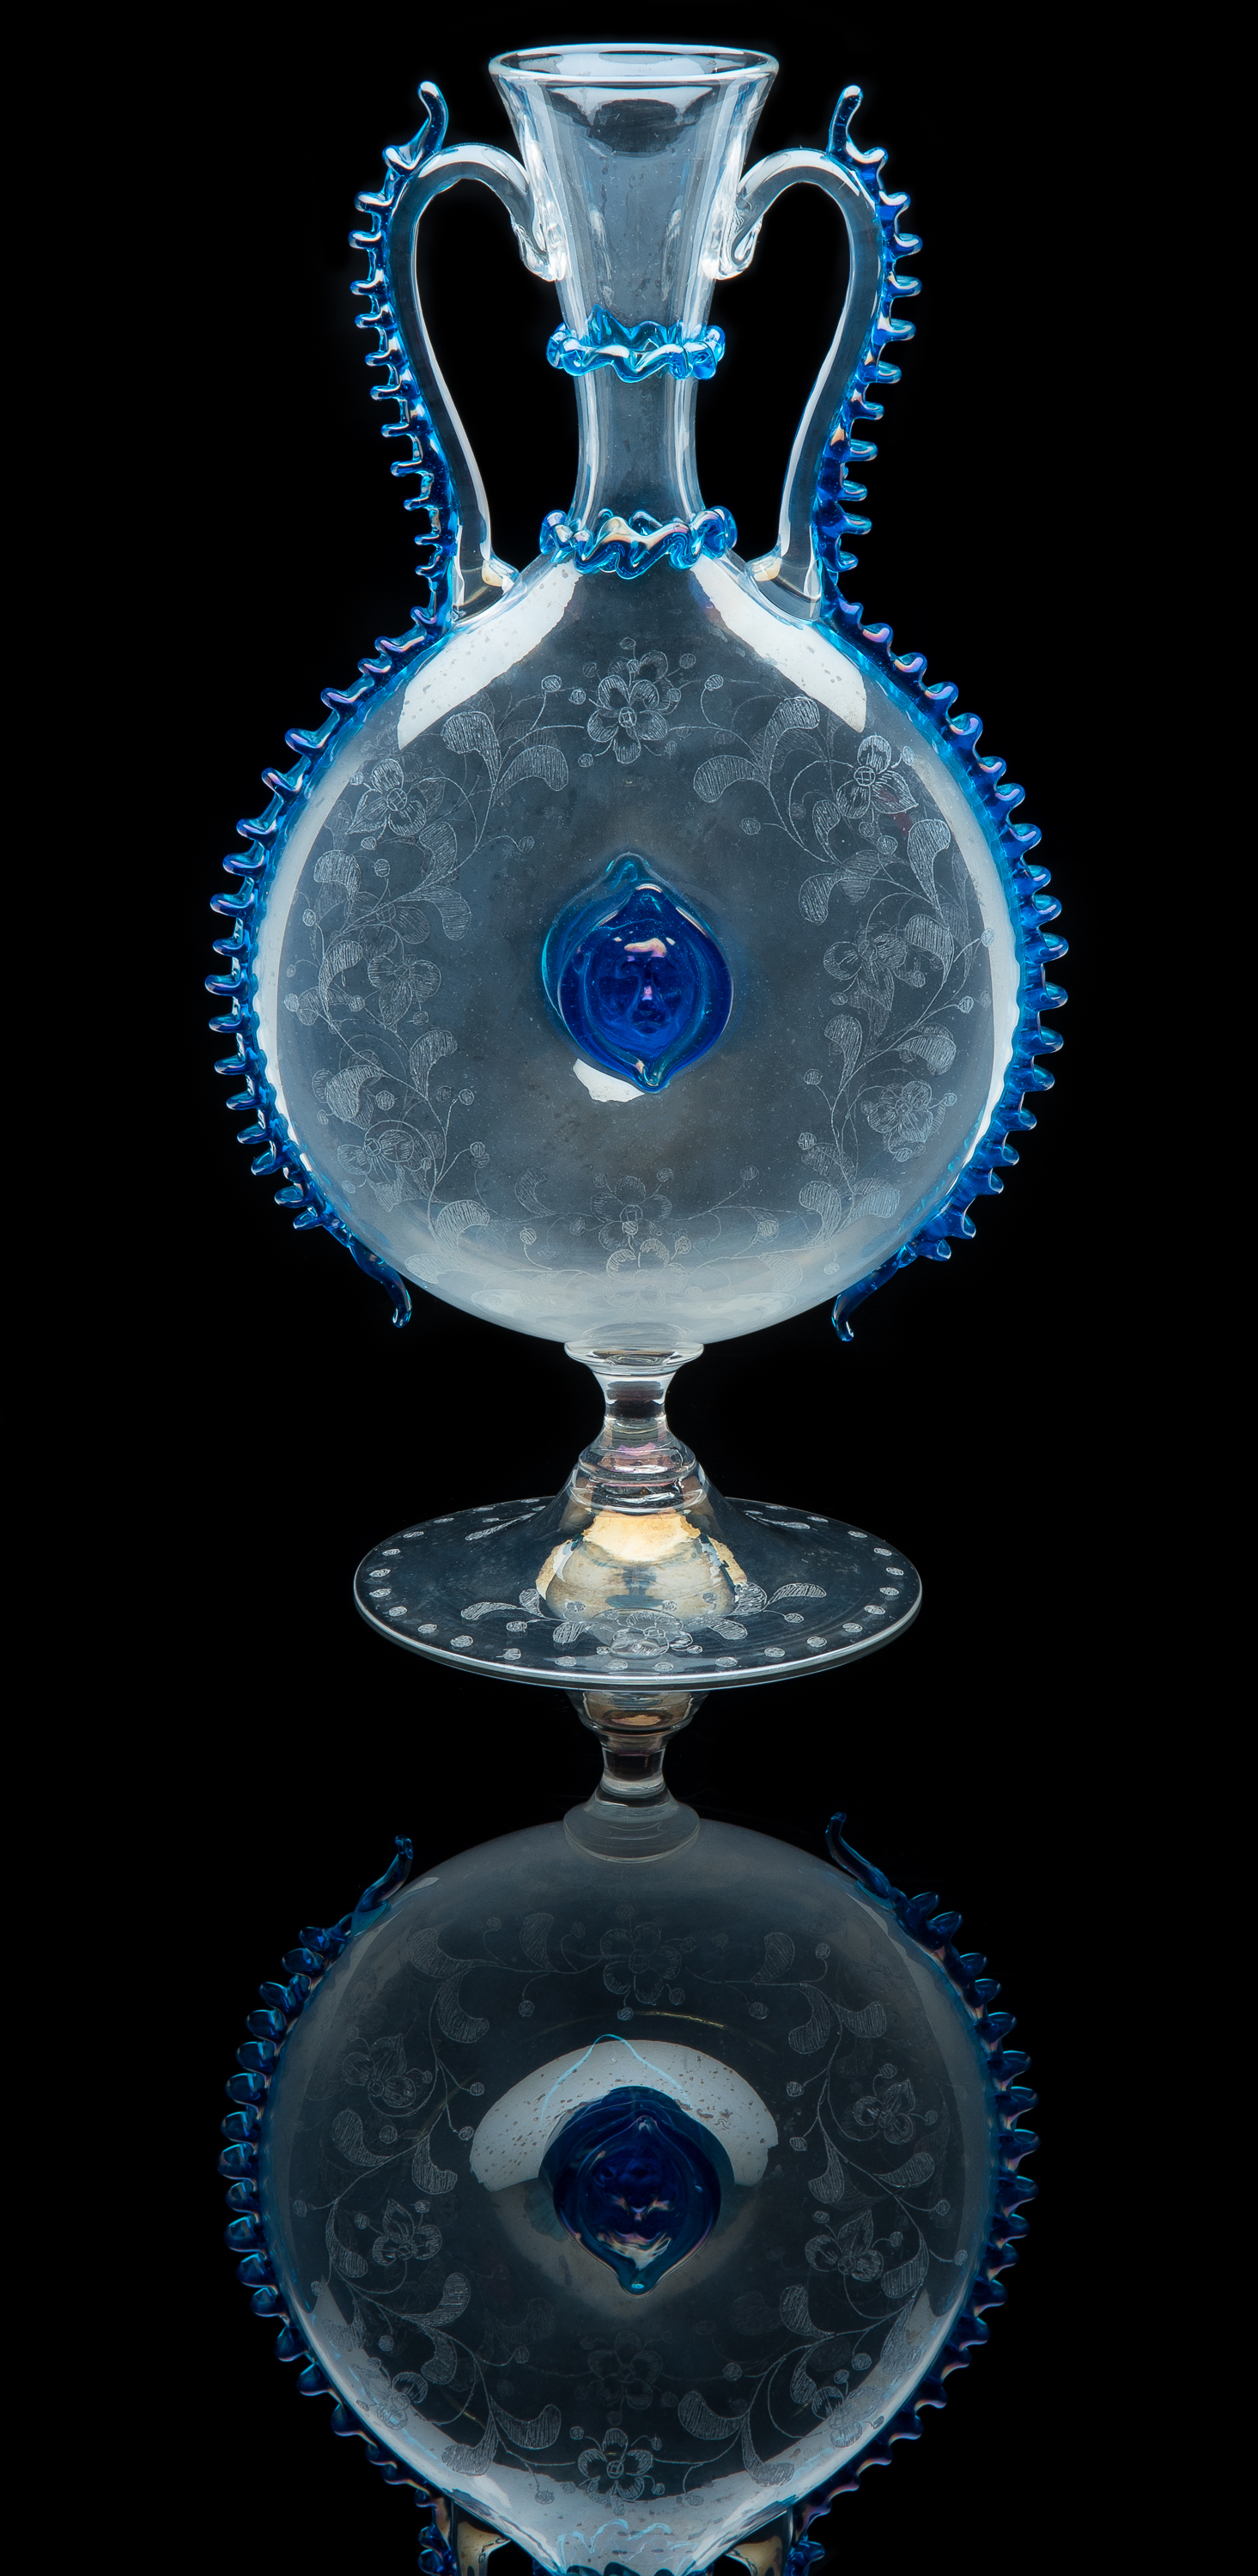 Salviati and Company,  Engraved Clear Vase with Cobalt Rigaree  (glass, 11 inches), VV.1114